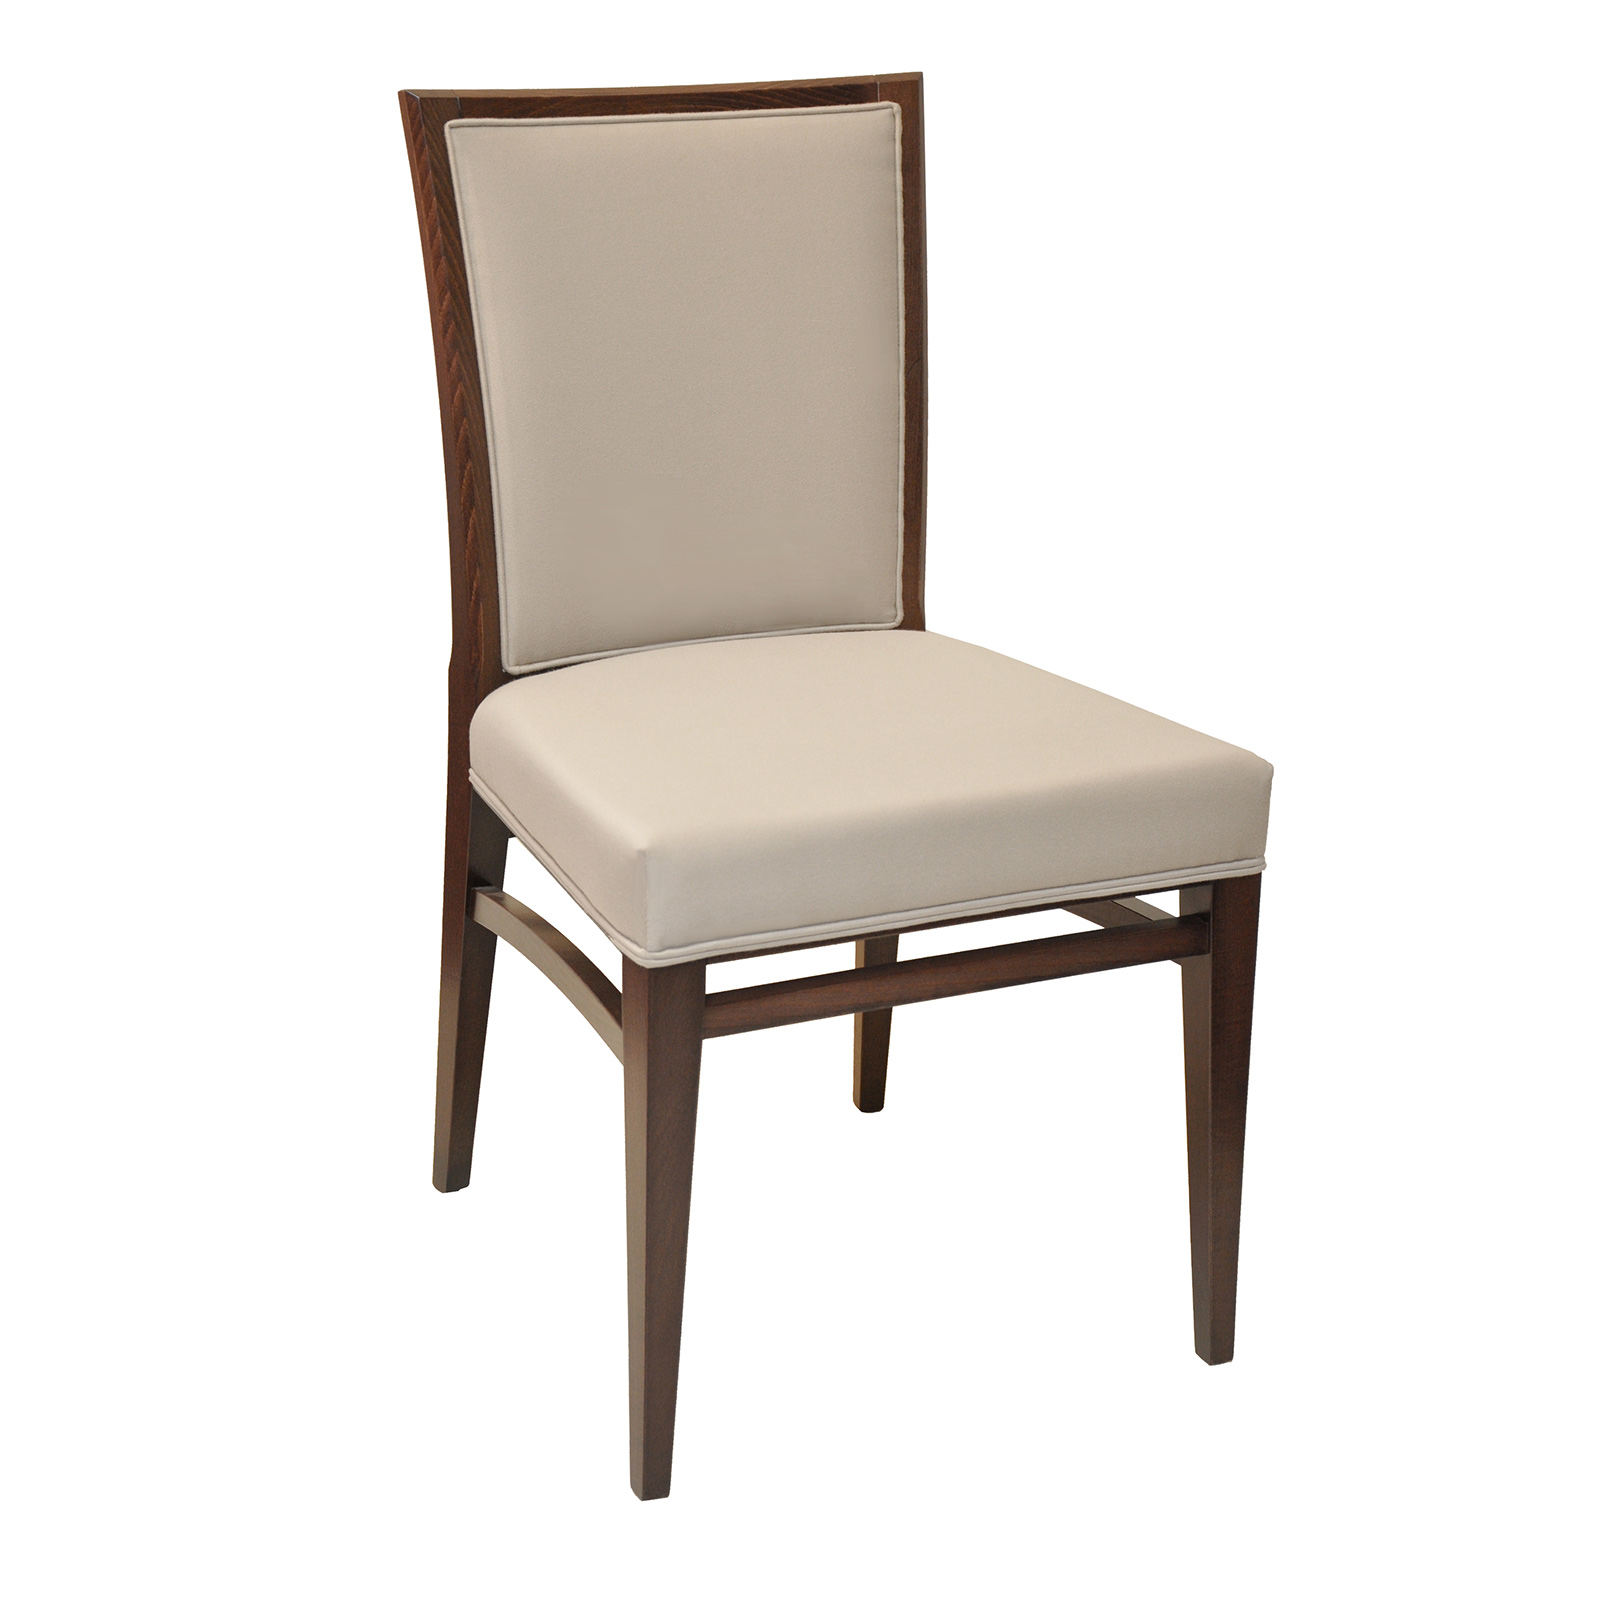 Florida Seating CN-JESSICA S GR7 chair, side, indoor